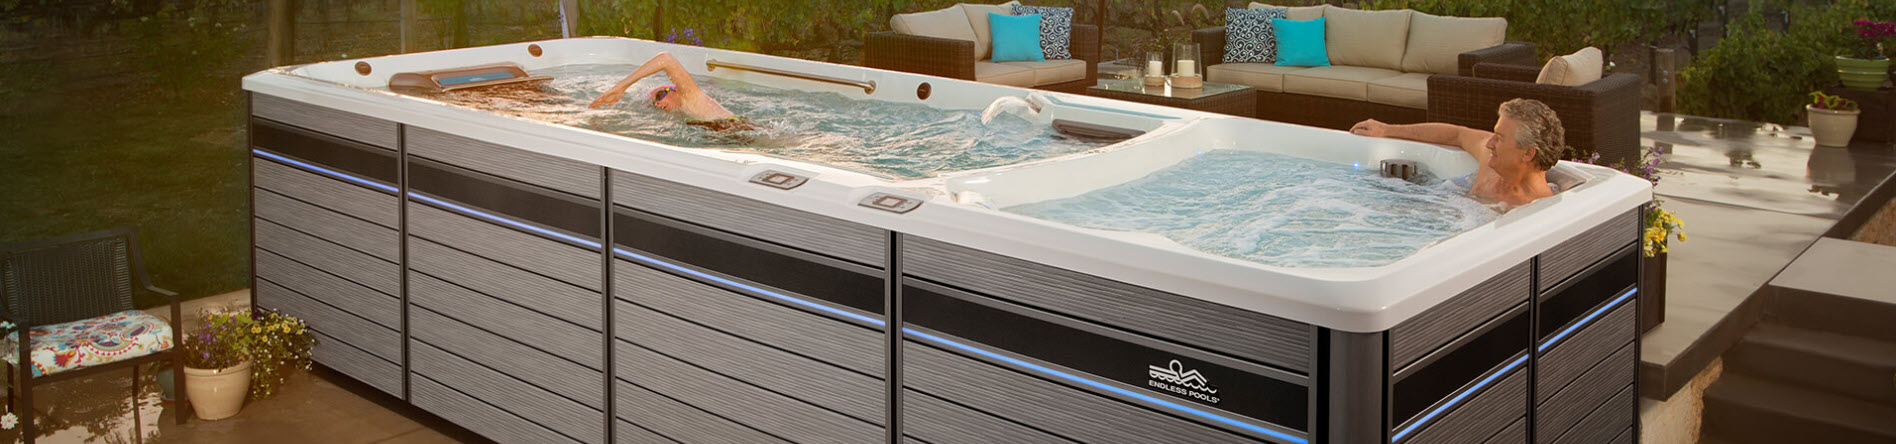 Get in Better Shape Faster with an Amazing Lap Pool, Swim Spas Ames